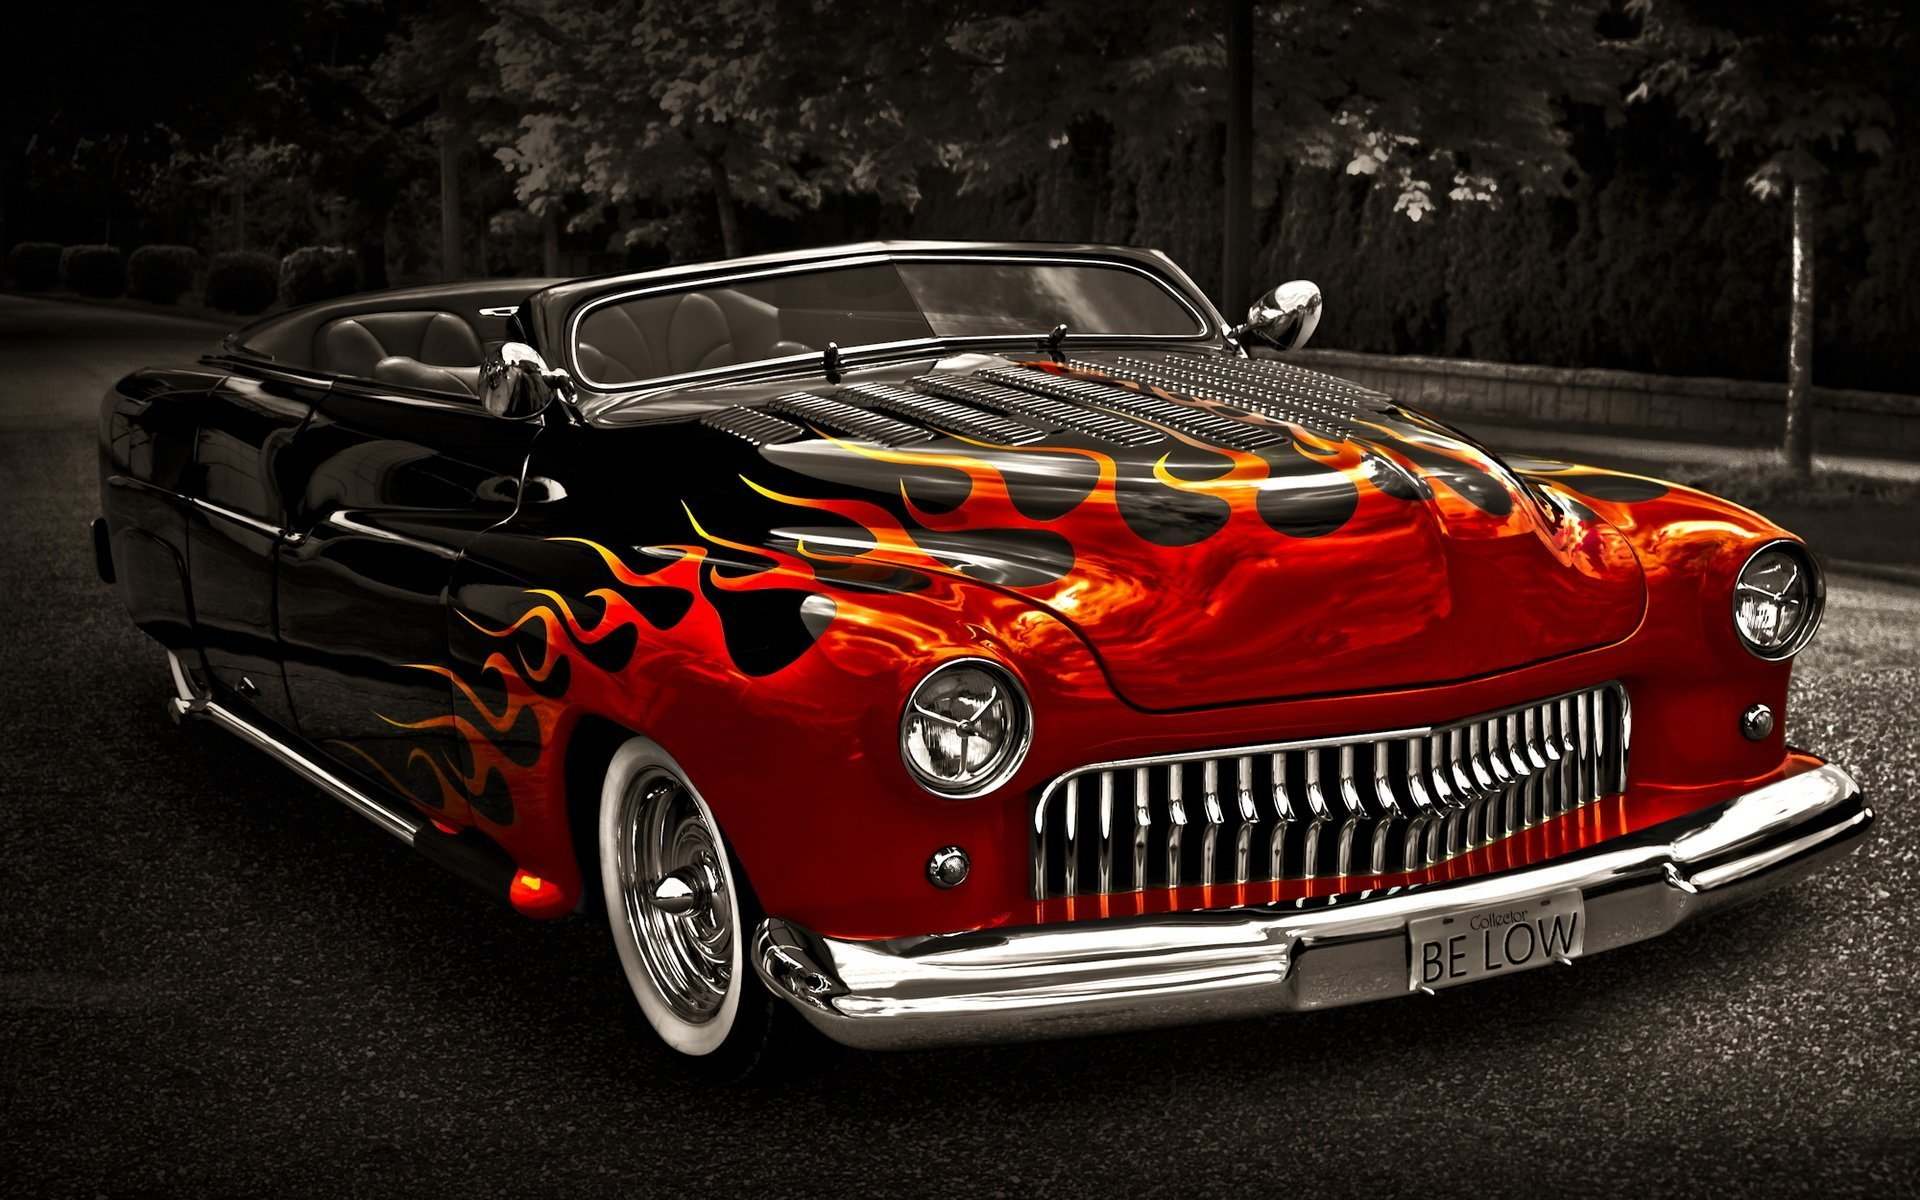 Latest Mercury Full Hd Wallpaper And Background Image 1920X1200 Free Download